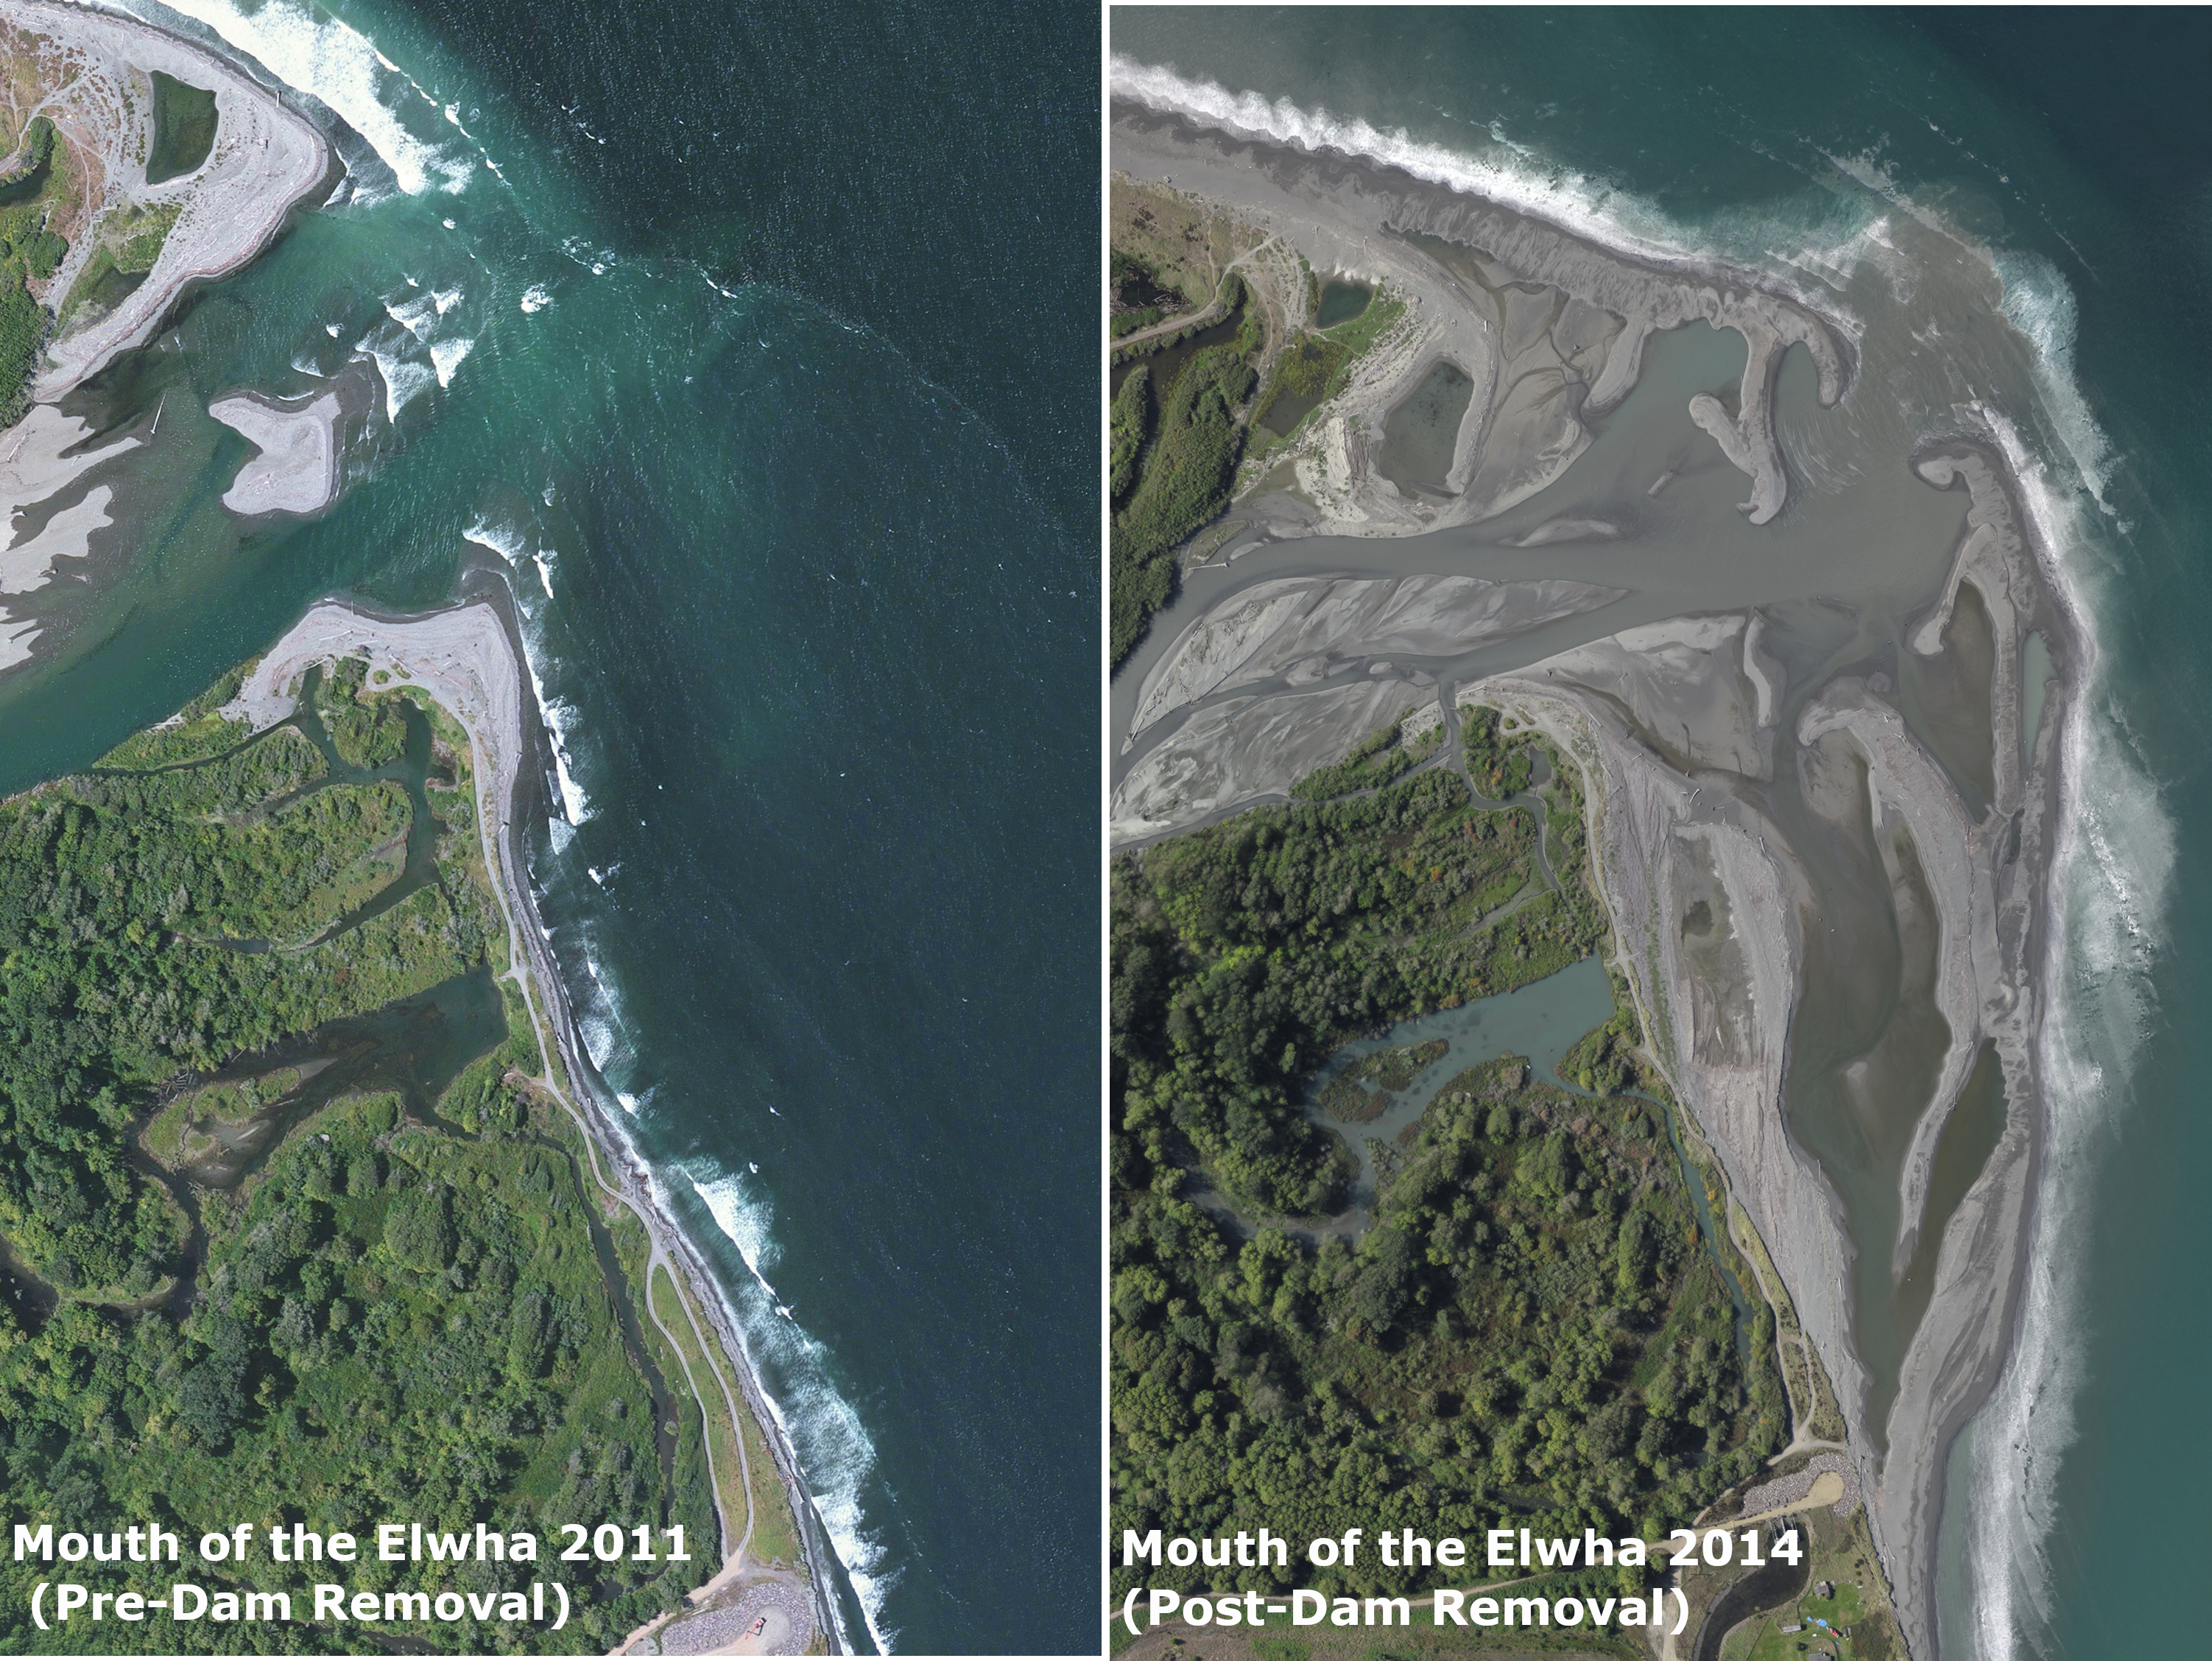 Change in the mouth of the Elwha River following dam removal.